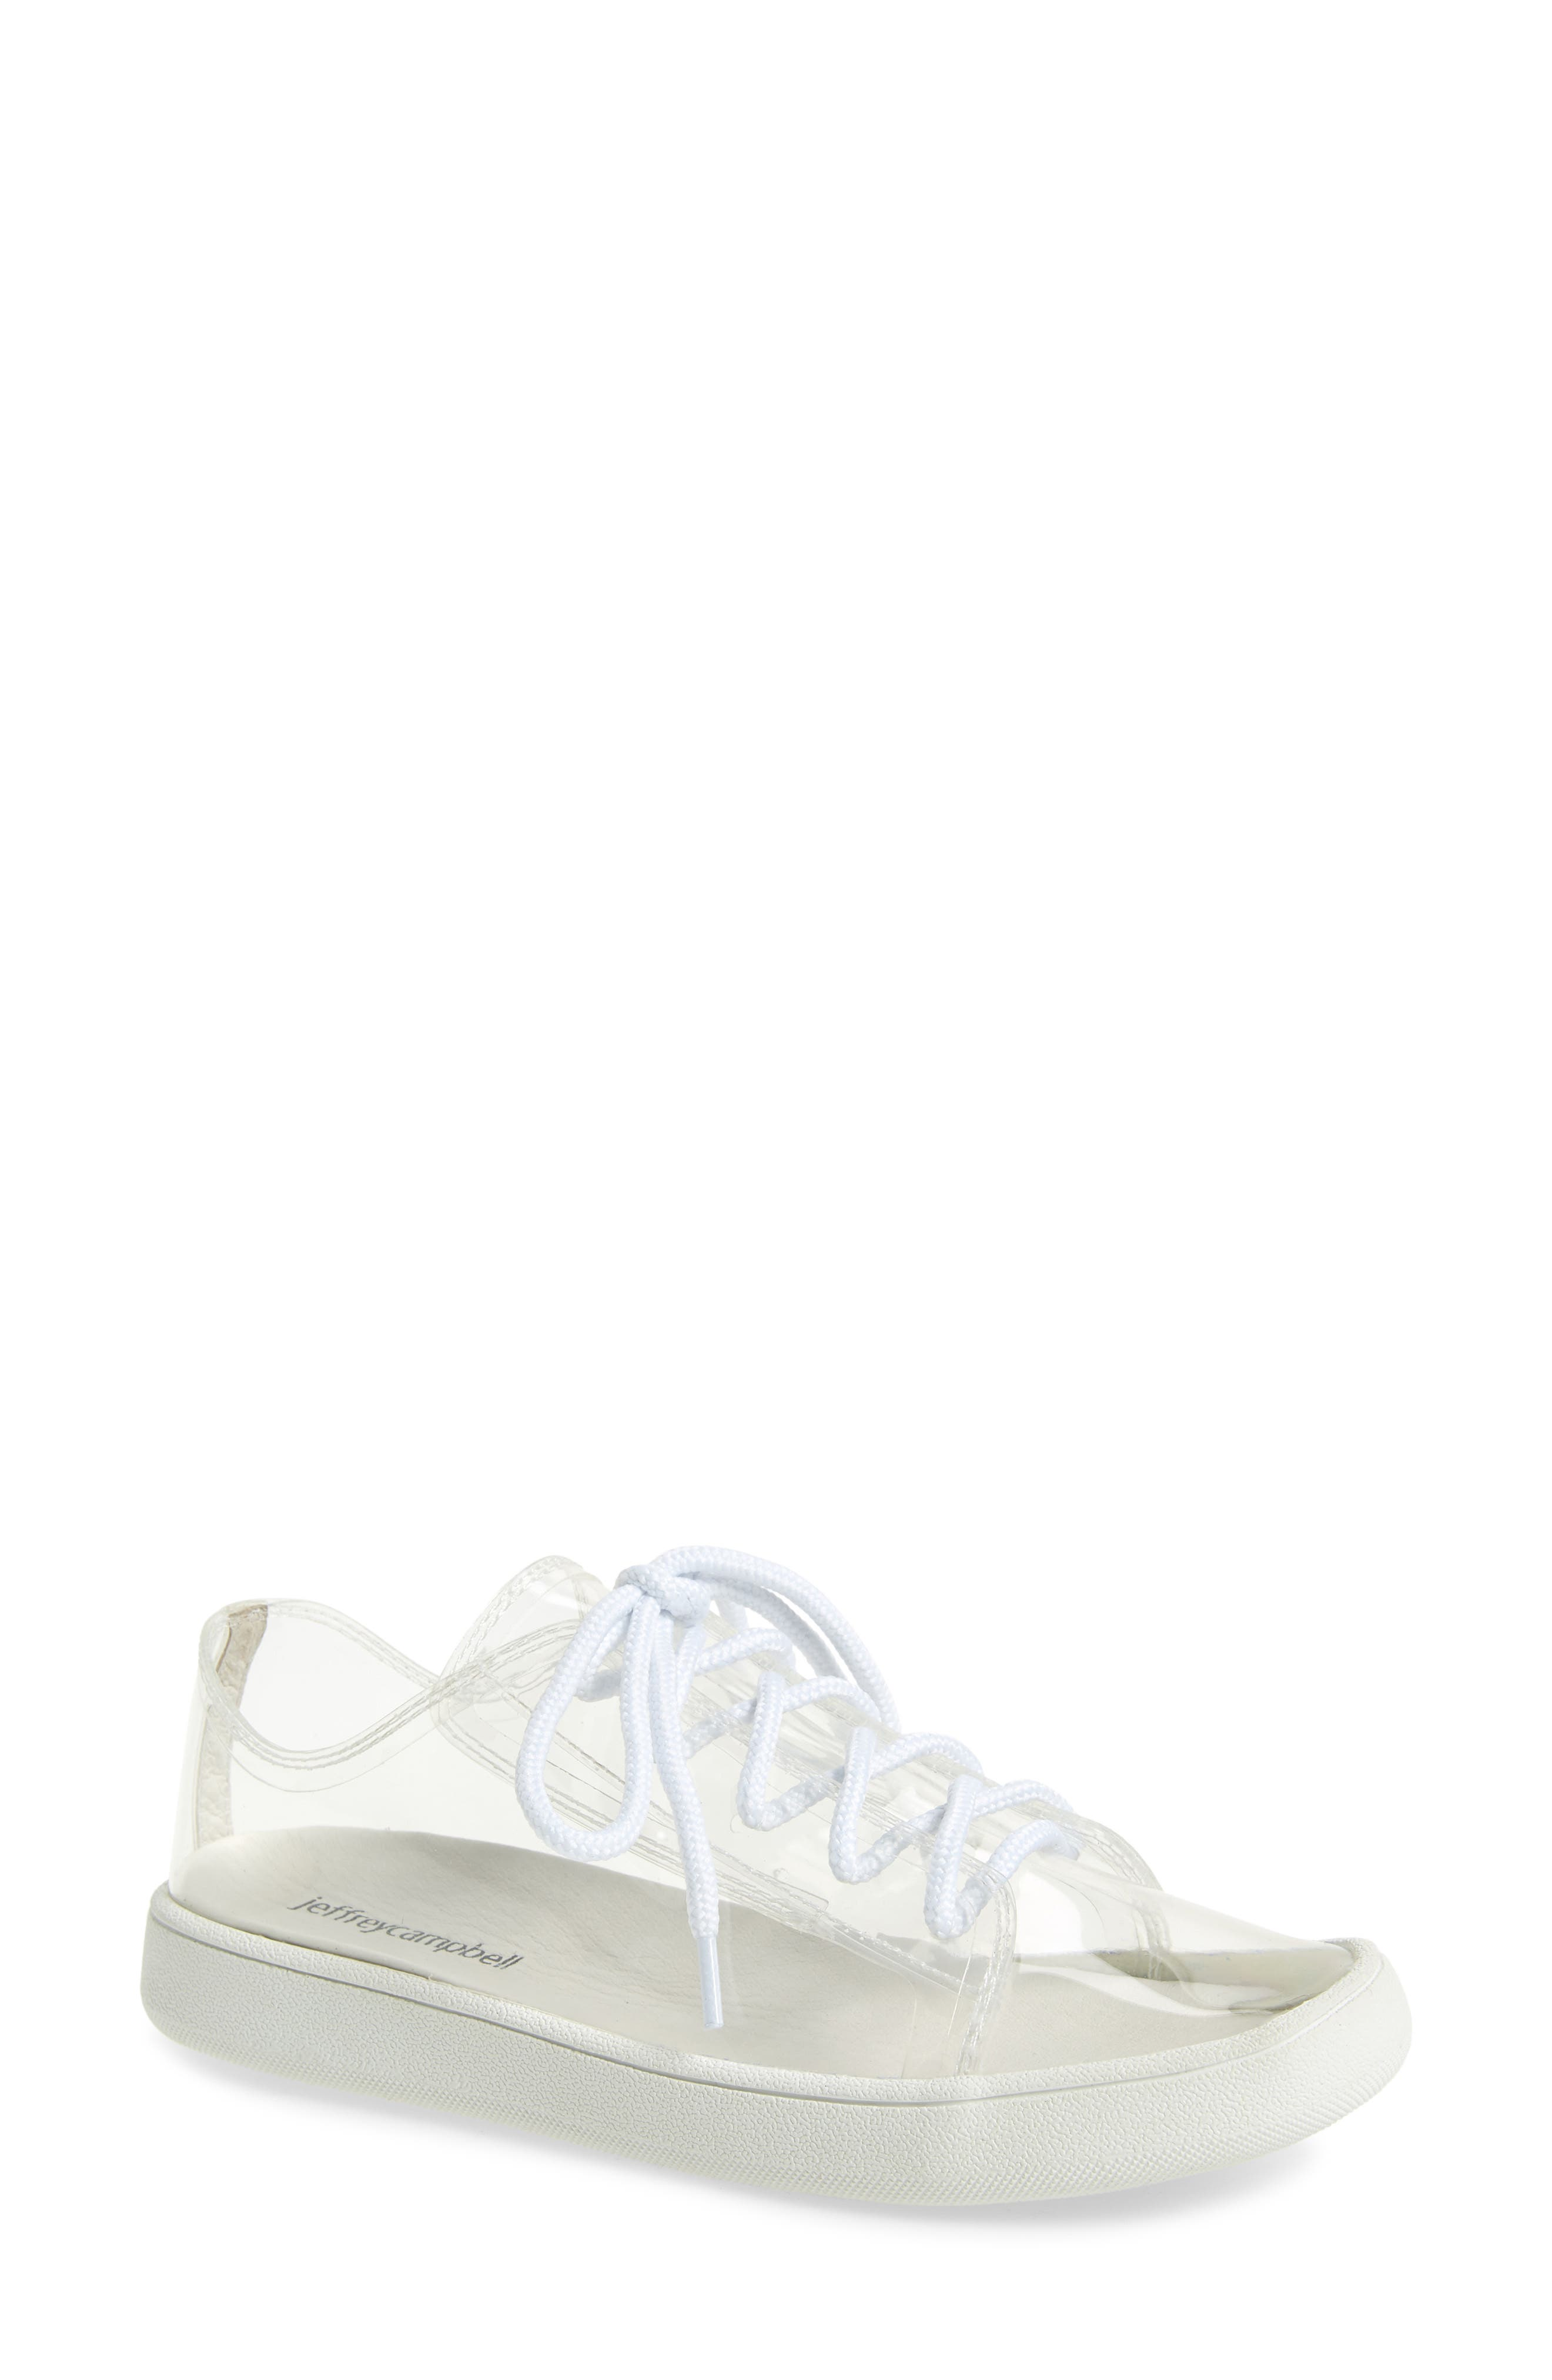 Ganador 2 Clear Low Top Sneaker, Main, color, 186